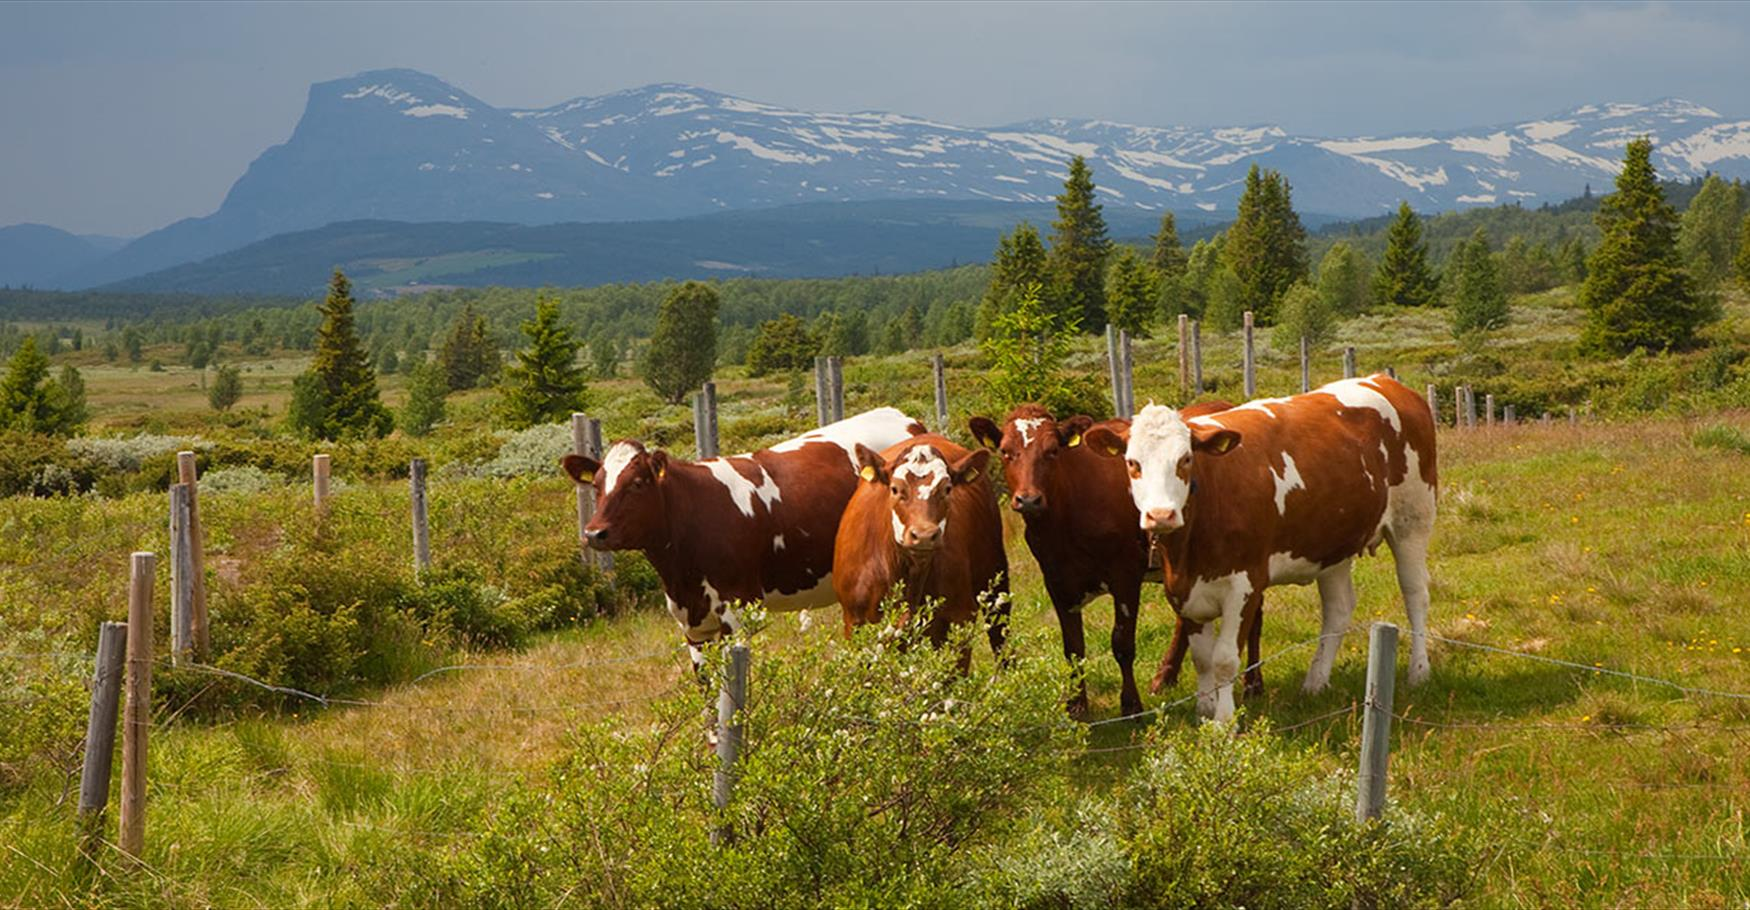 Cows grazing at Stølsvidda.